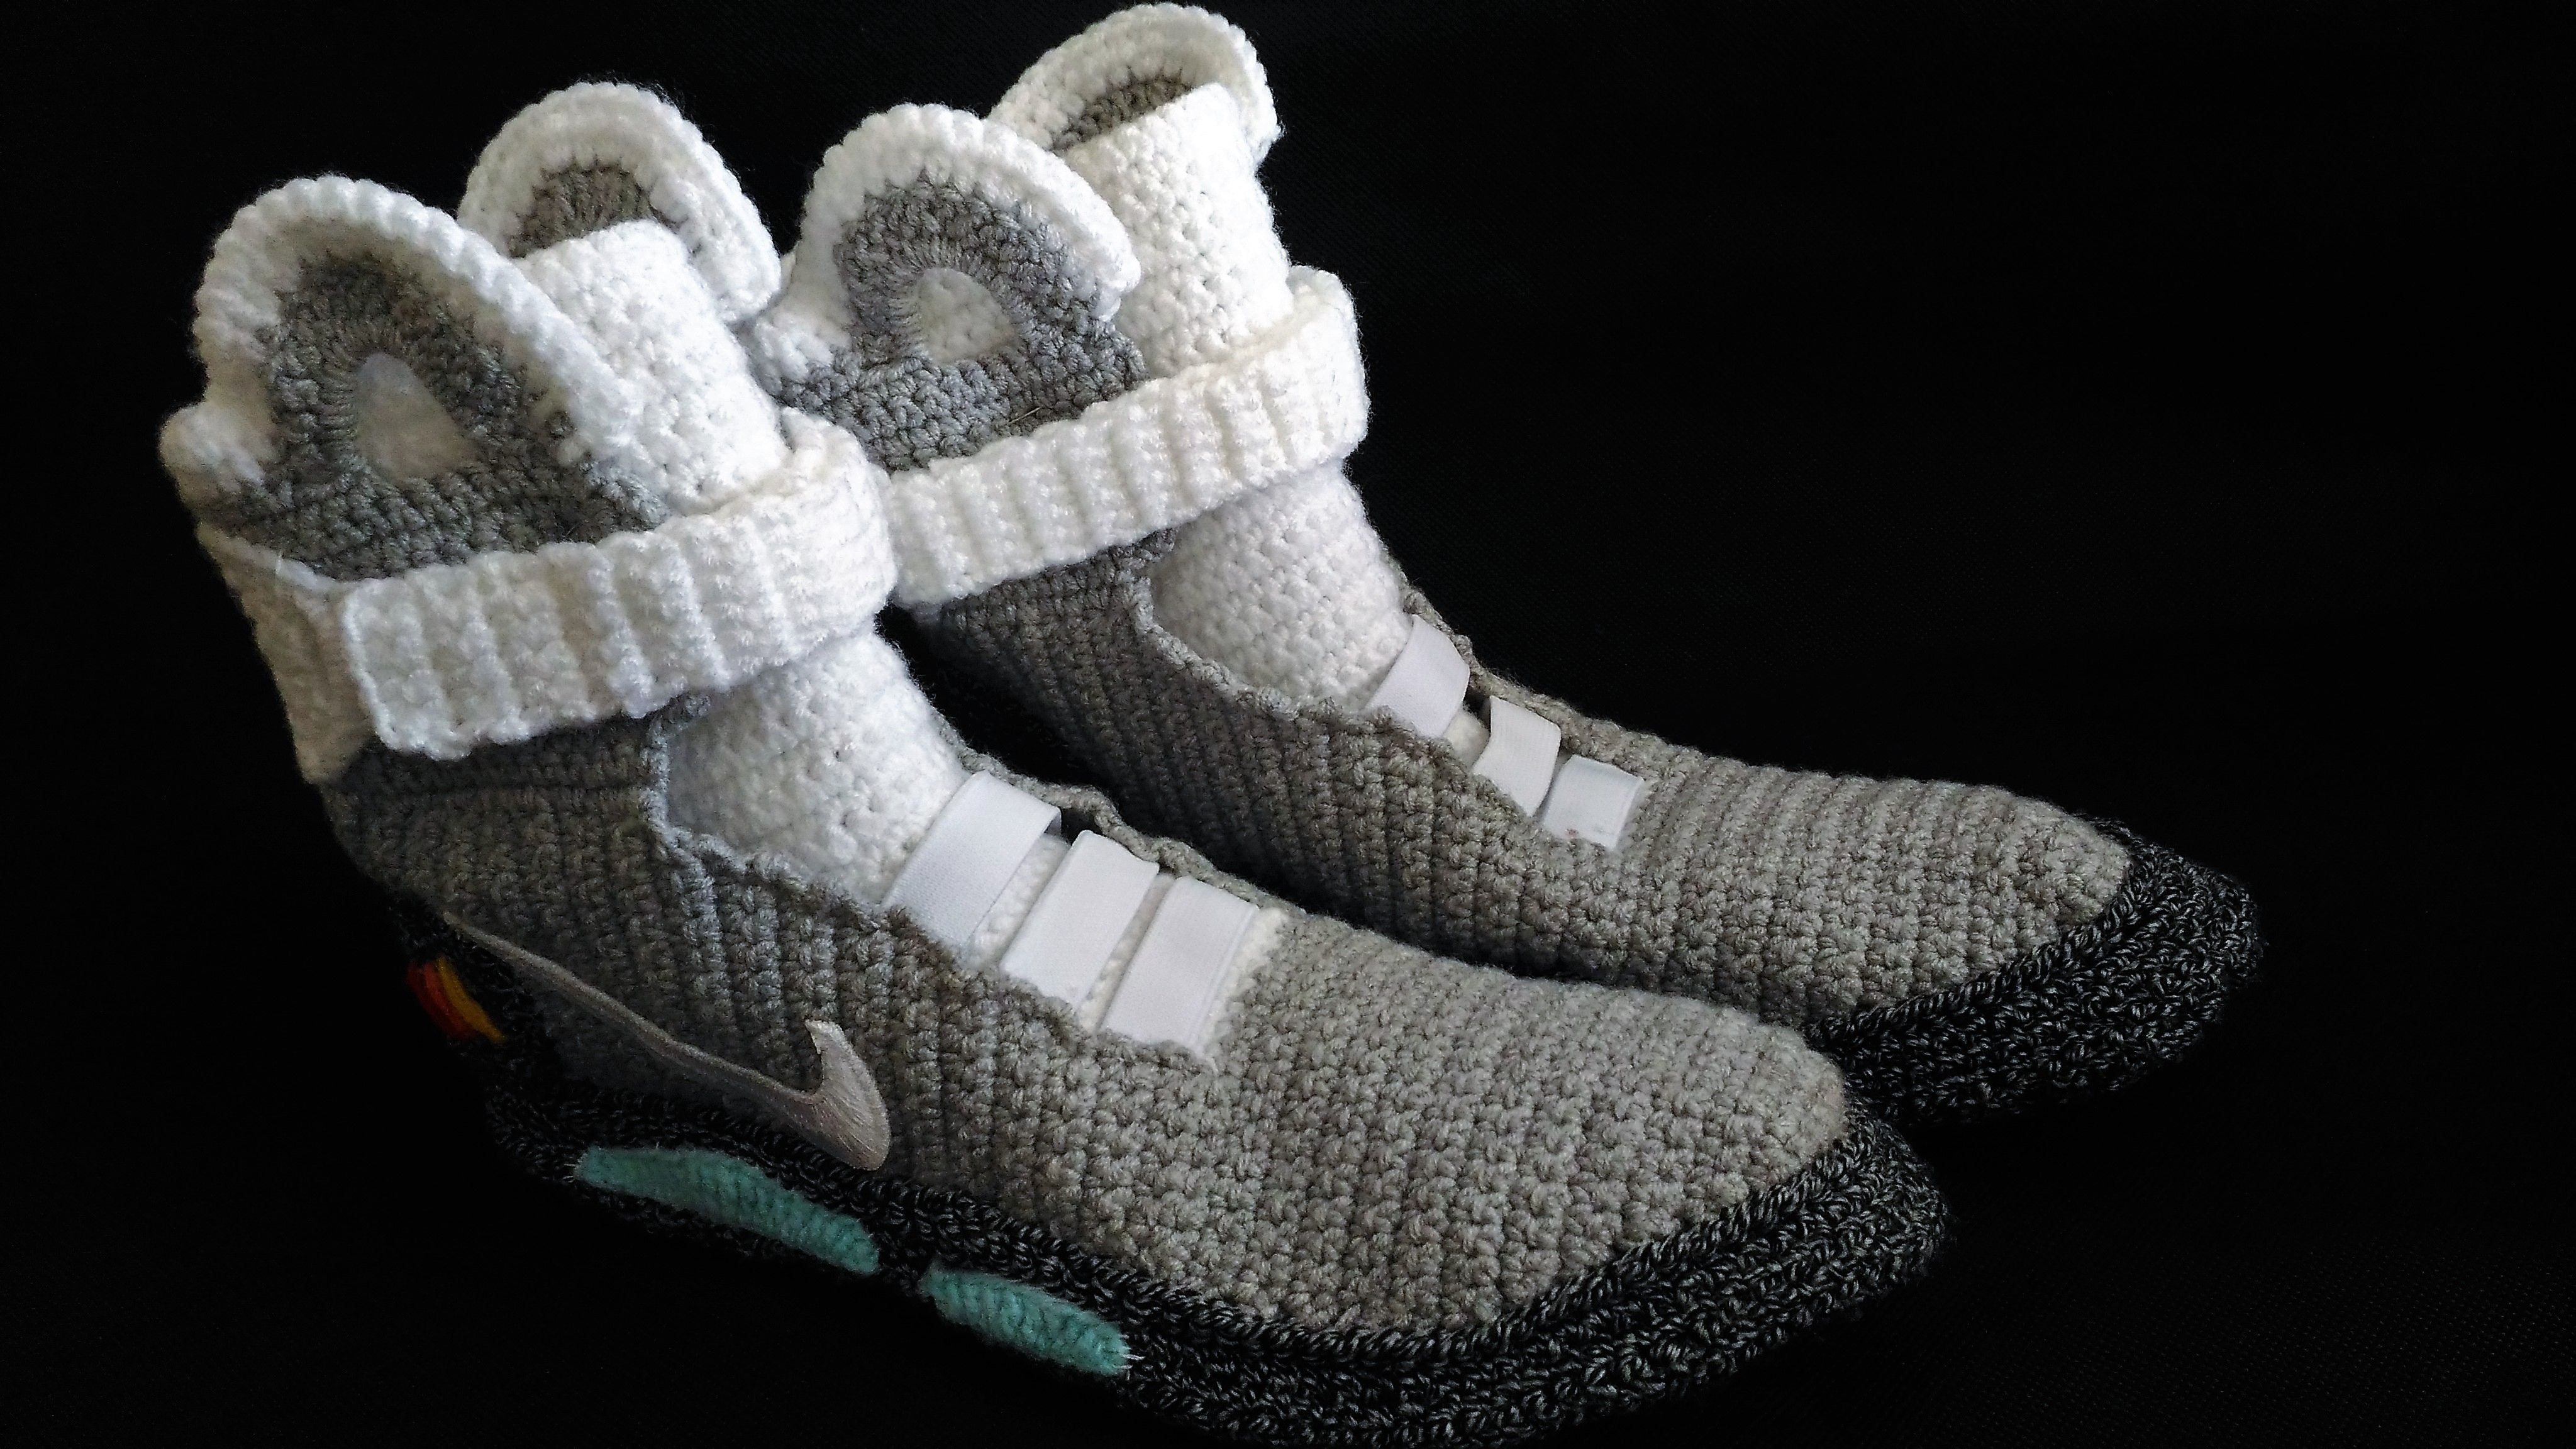 buy online f03f8 2c2f6 Marty Mcfly Shoes Nike Air Mags, Back To The Future, Knitted Slippers,  Handmade, Crochet Slipper Bootees, House Shoes, Air Mag Bootees  Bored  Panda